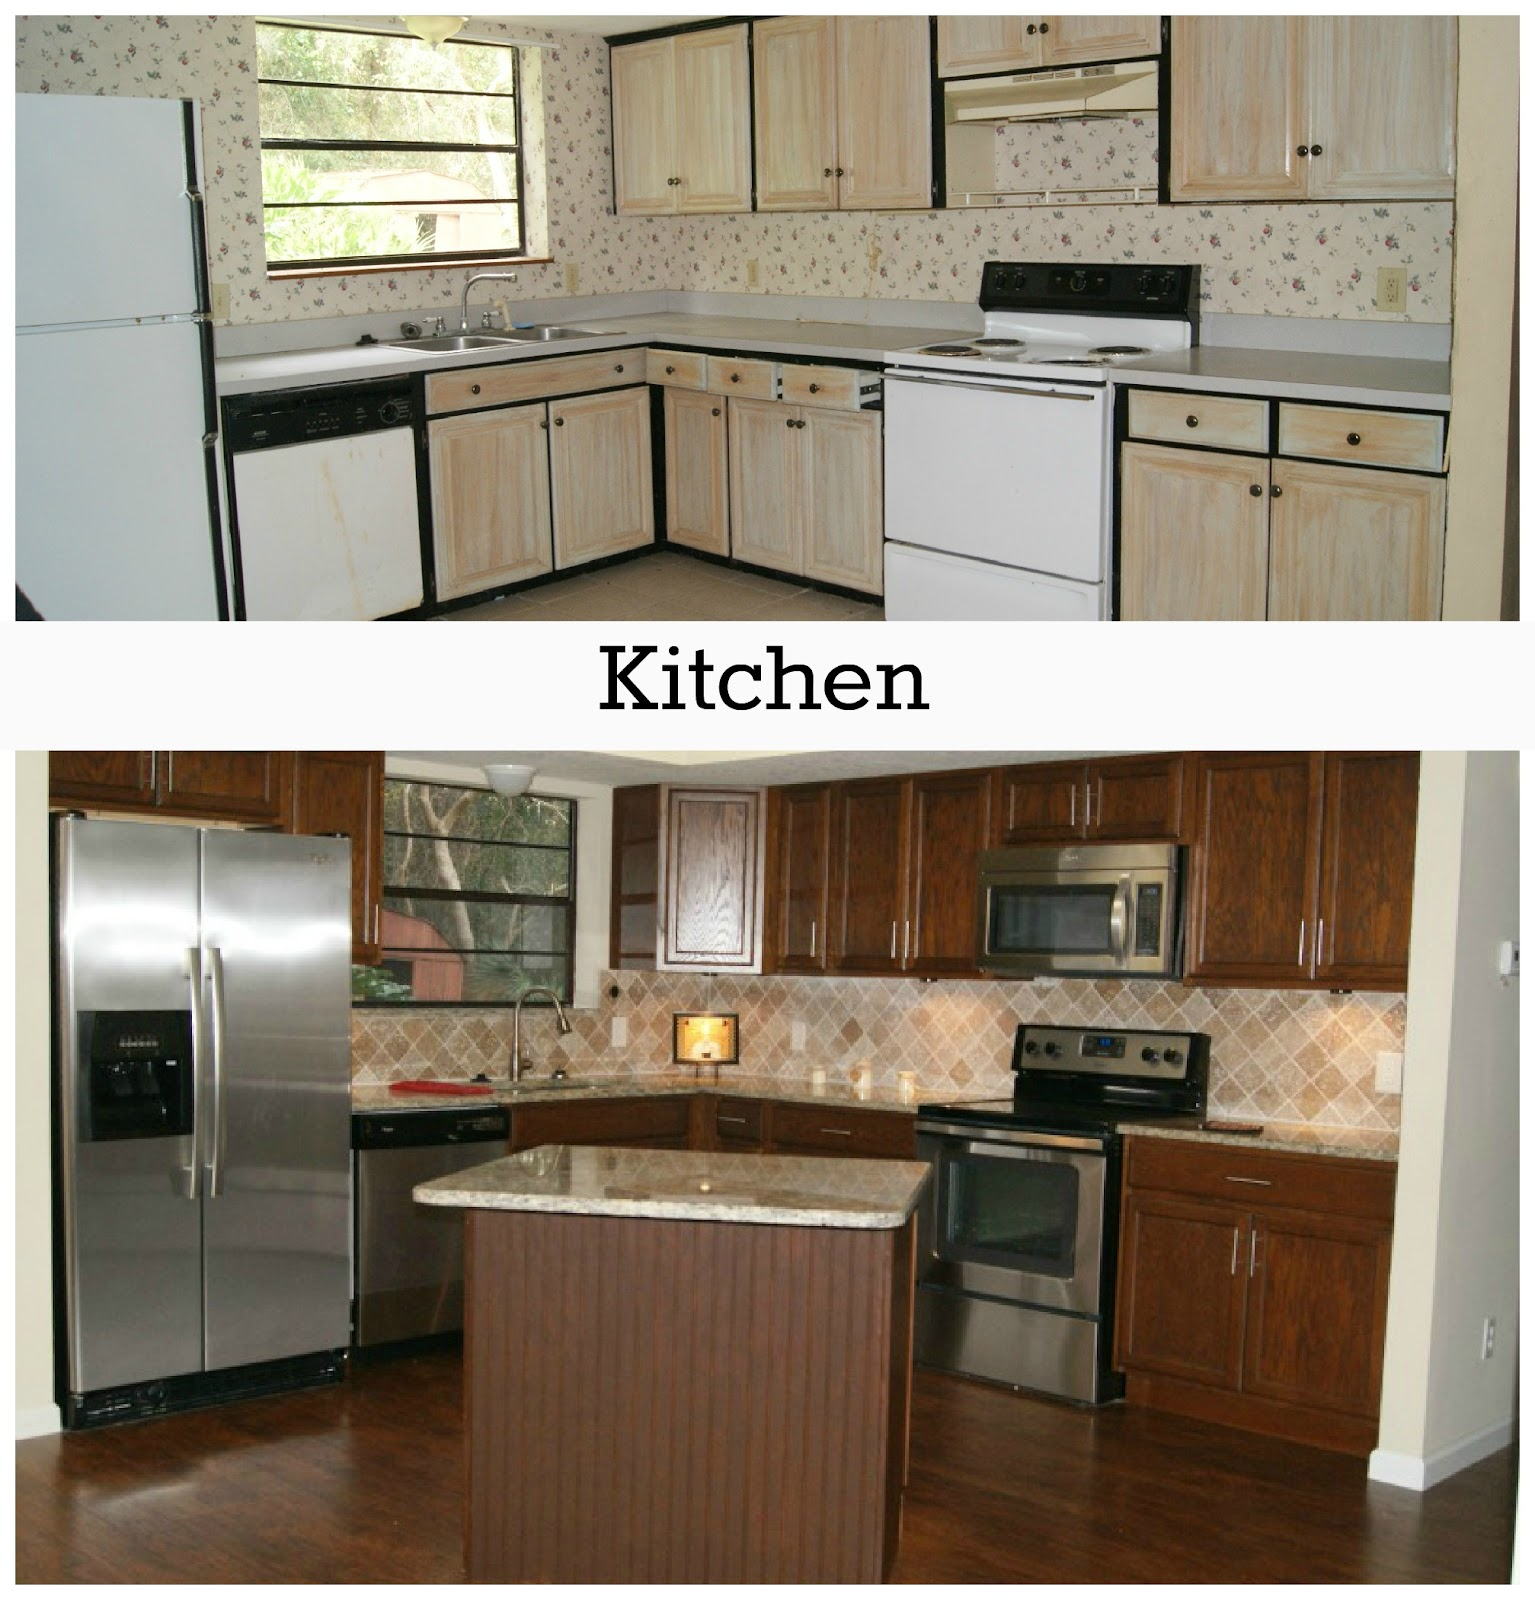 Kitchen.Beforeafter.jpg